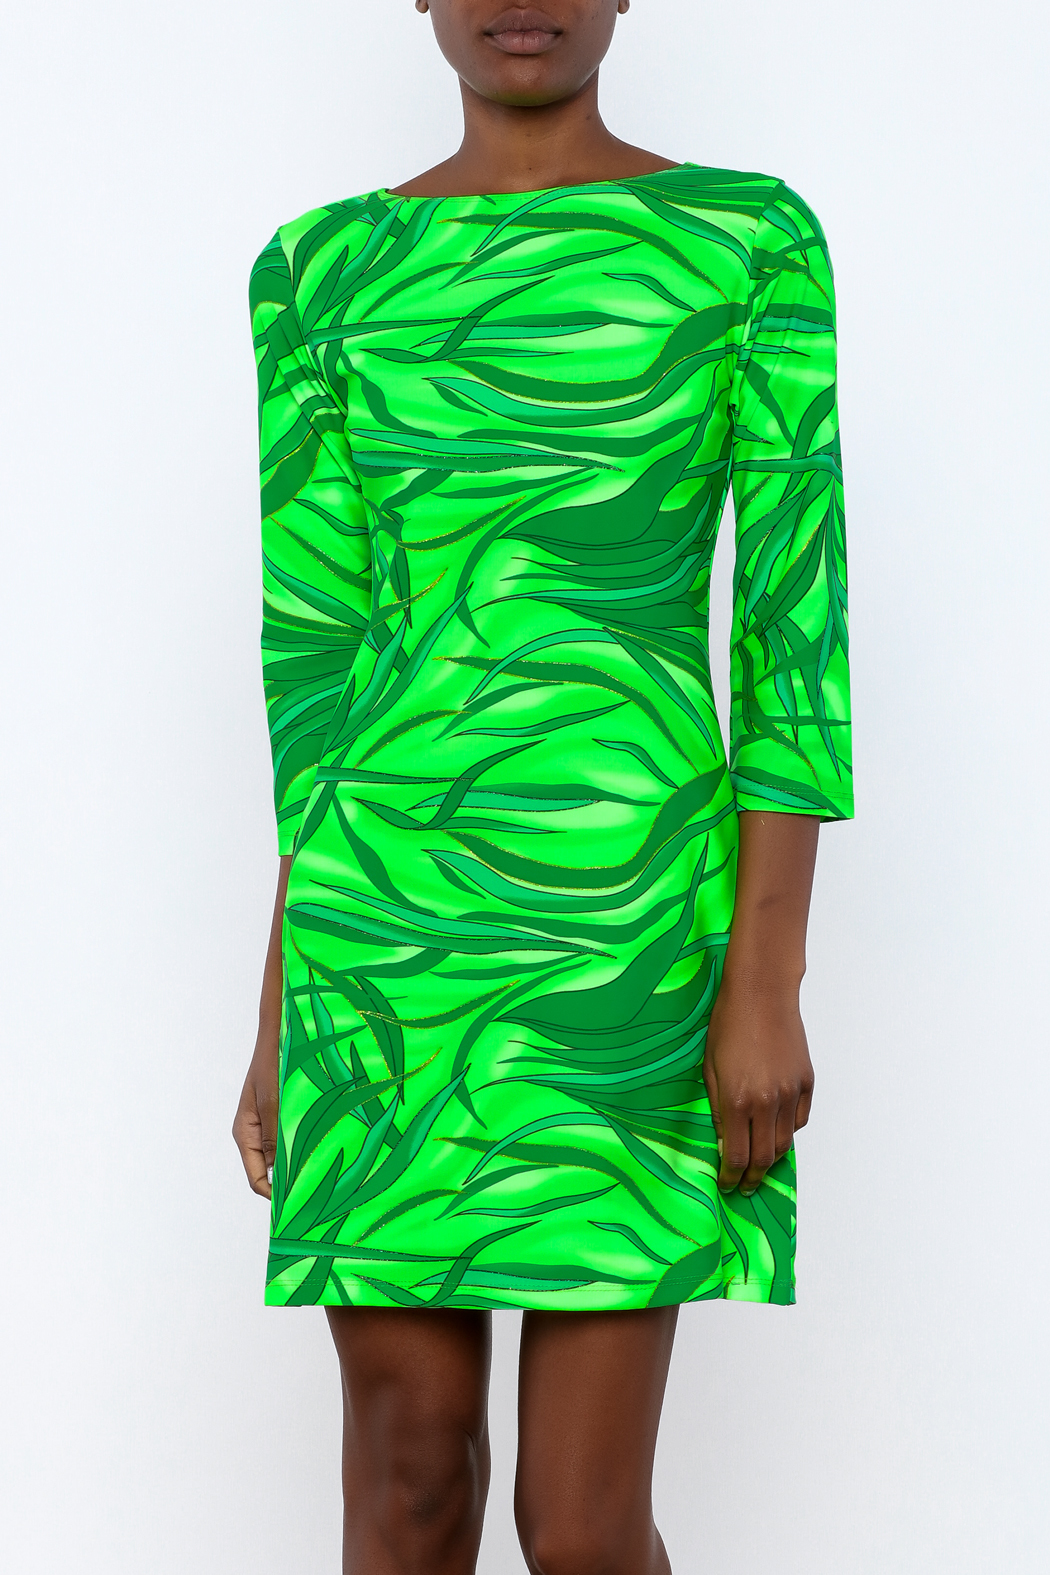 Coastal Girls Co. Green Wave Dress - Front Cropped Image